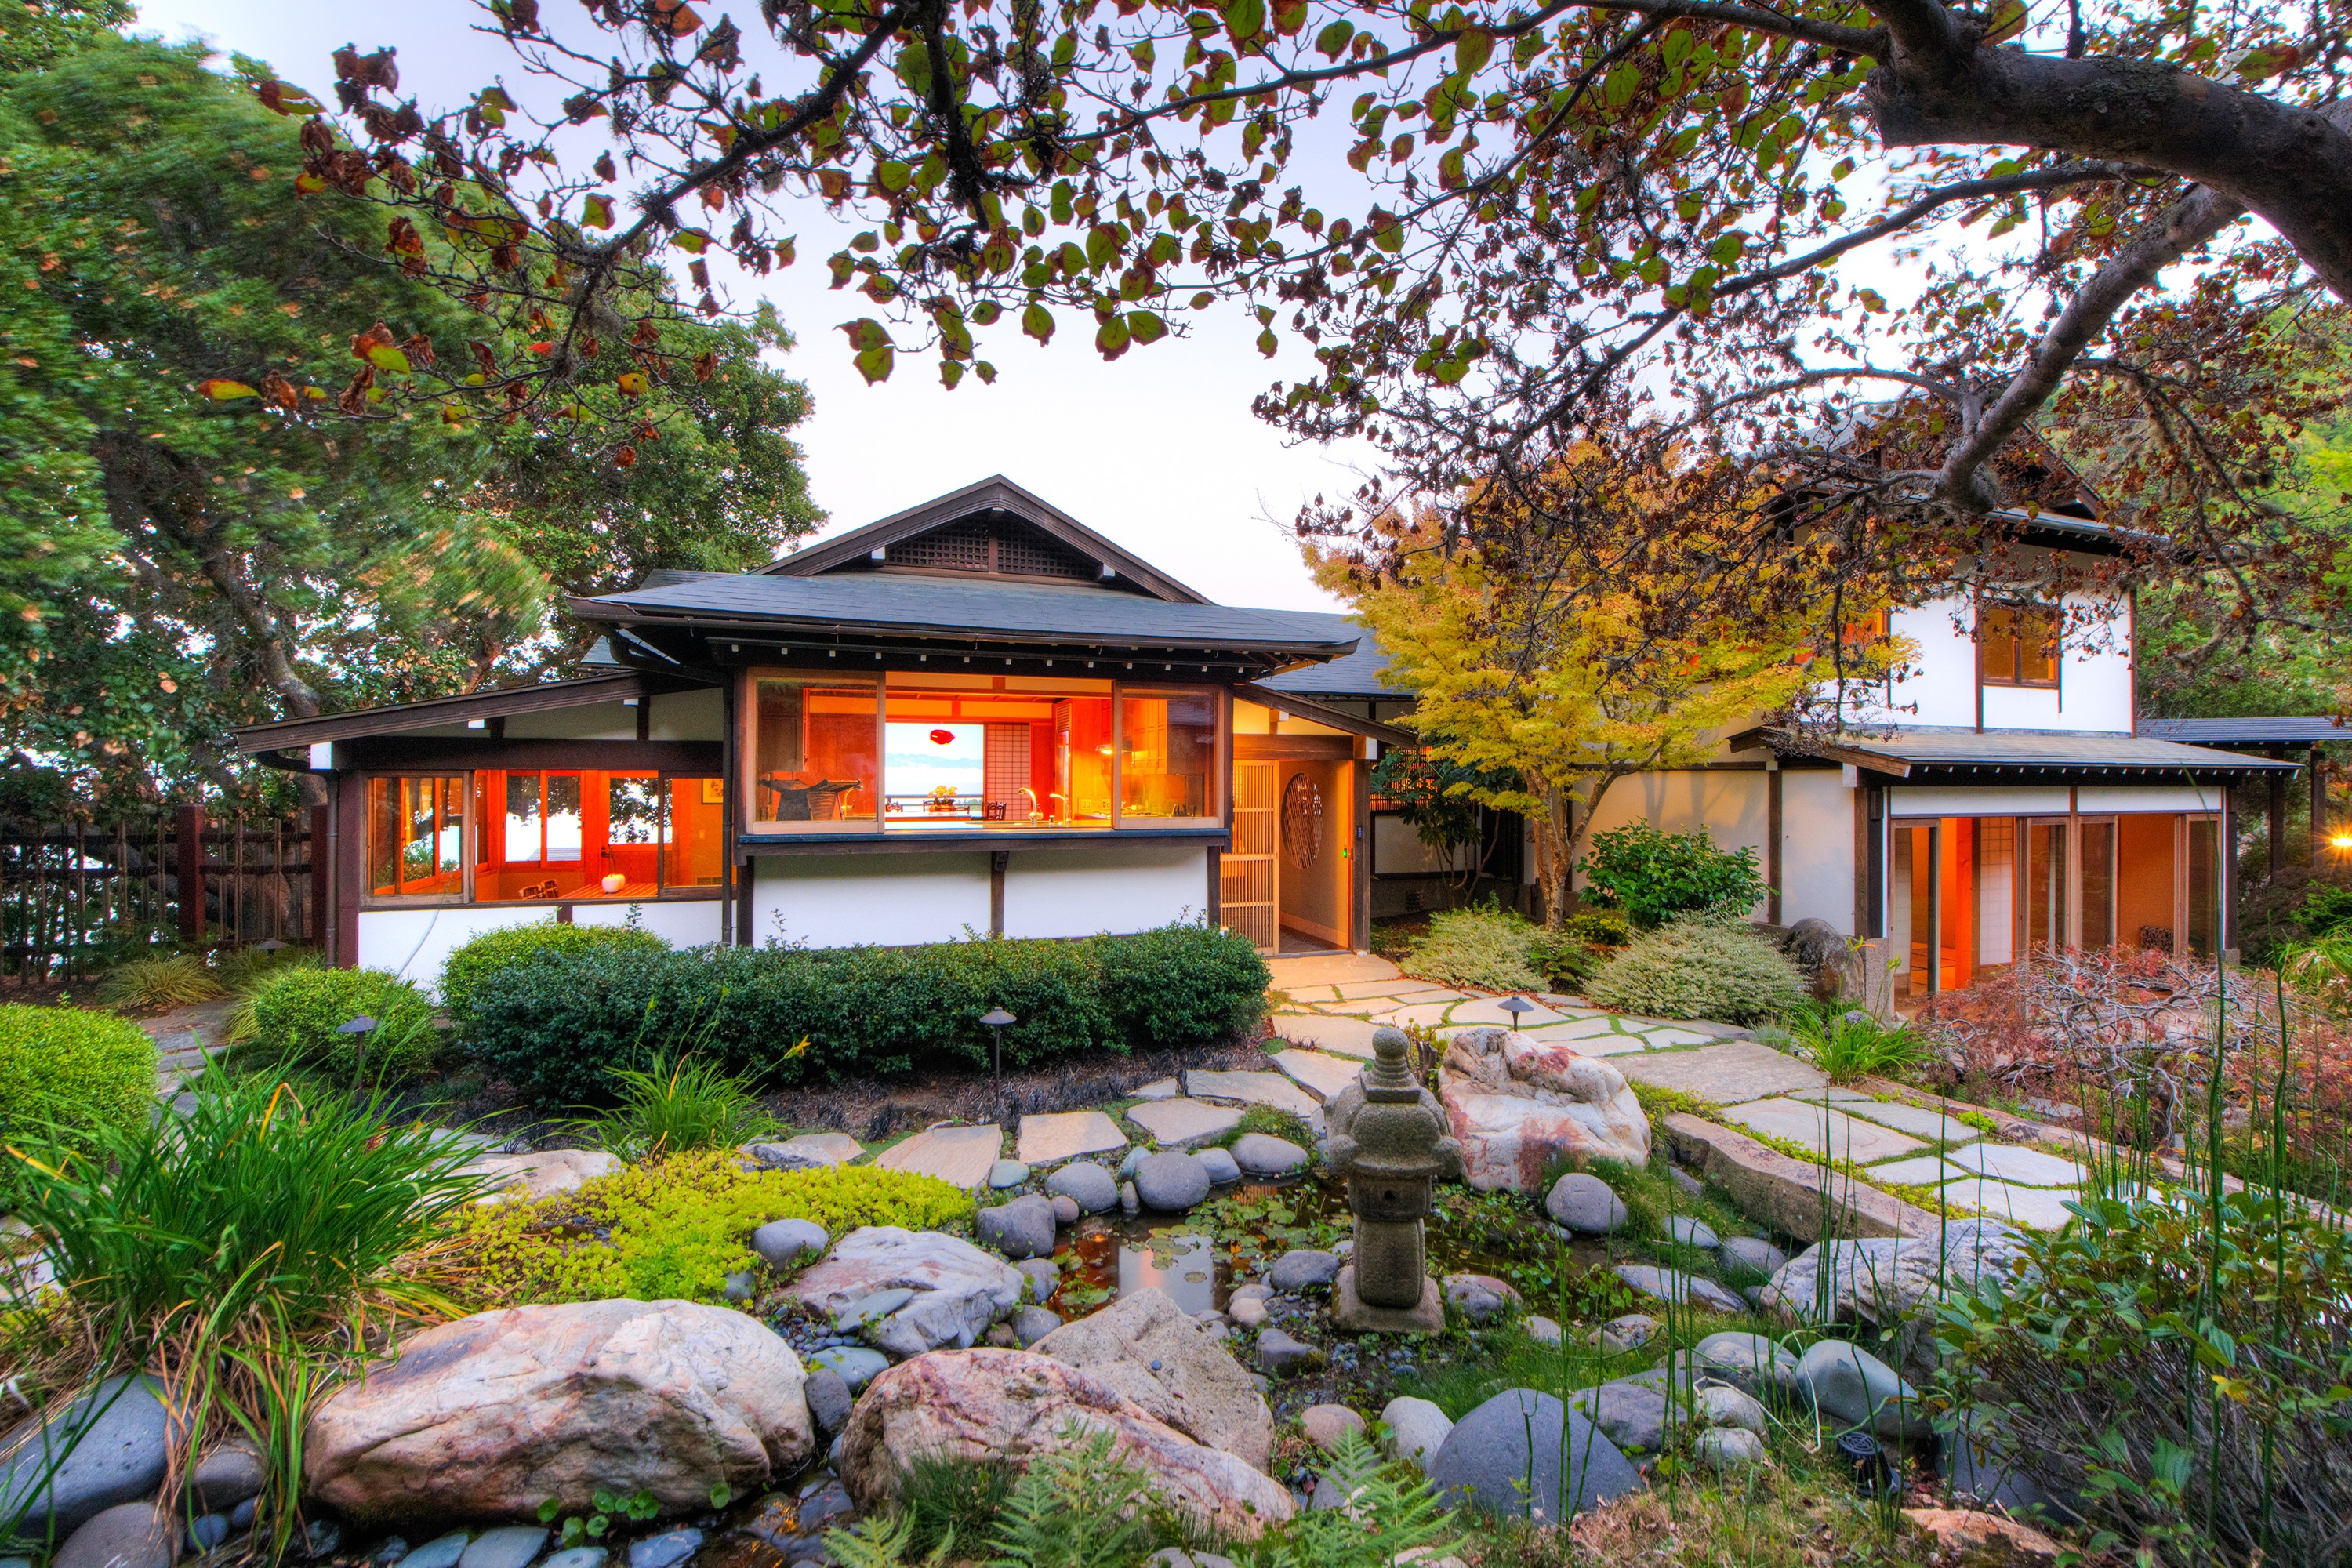 Casa Unifamiliar por un Venta en Classical Japanese Meets American Techno-Luxe 63 Norman Way Tiburon, California, 94920 Estados Unidos